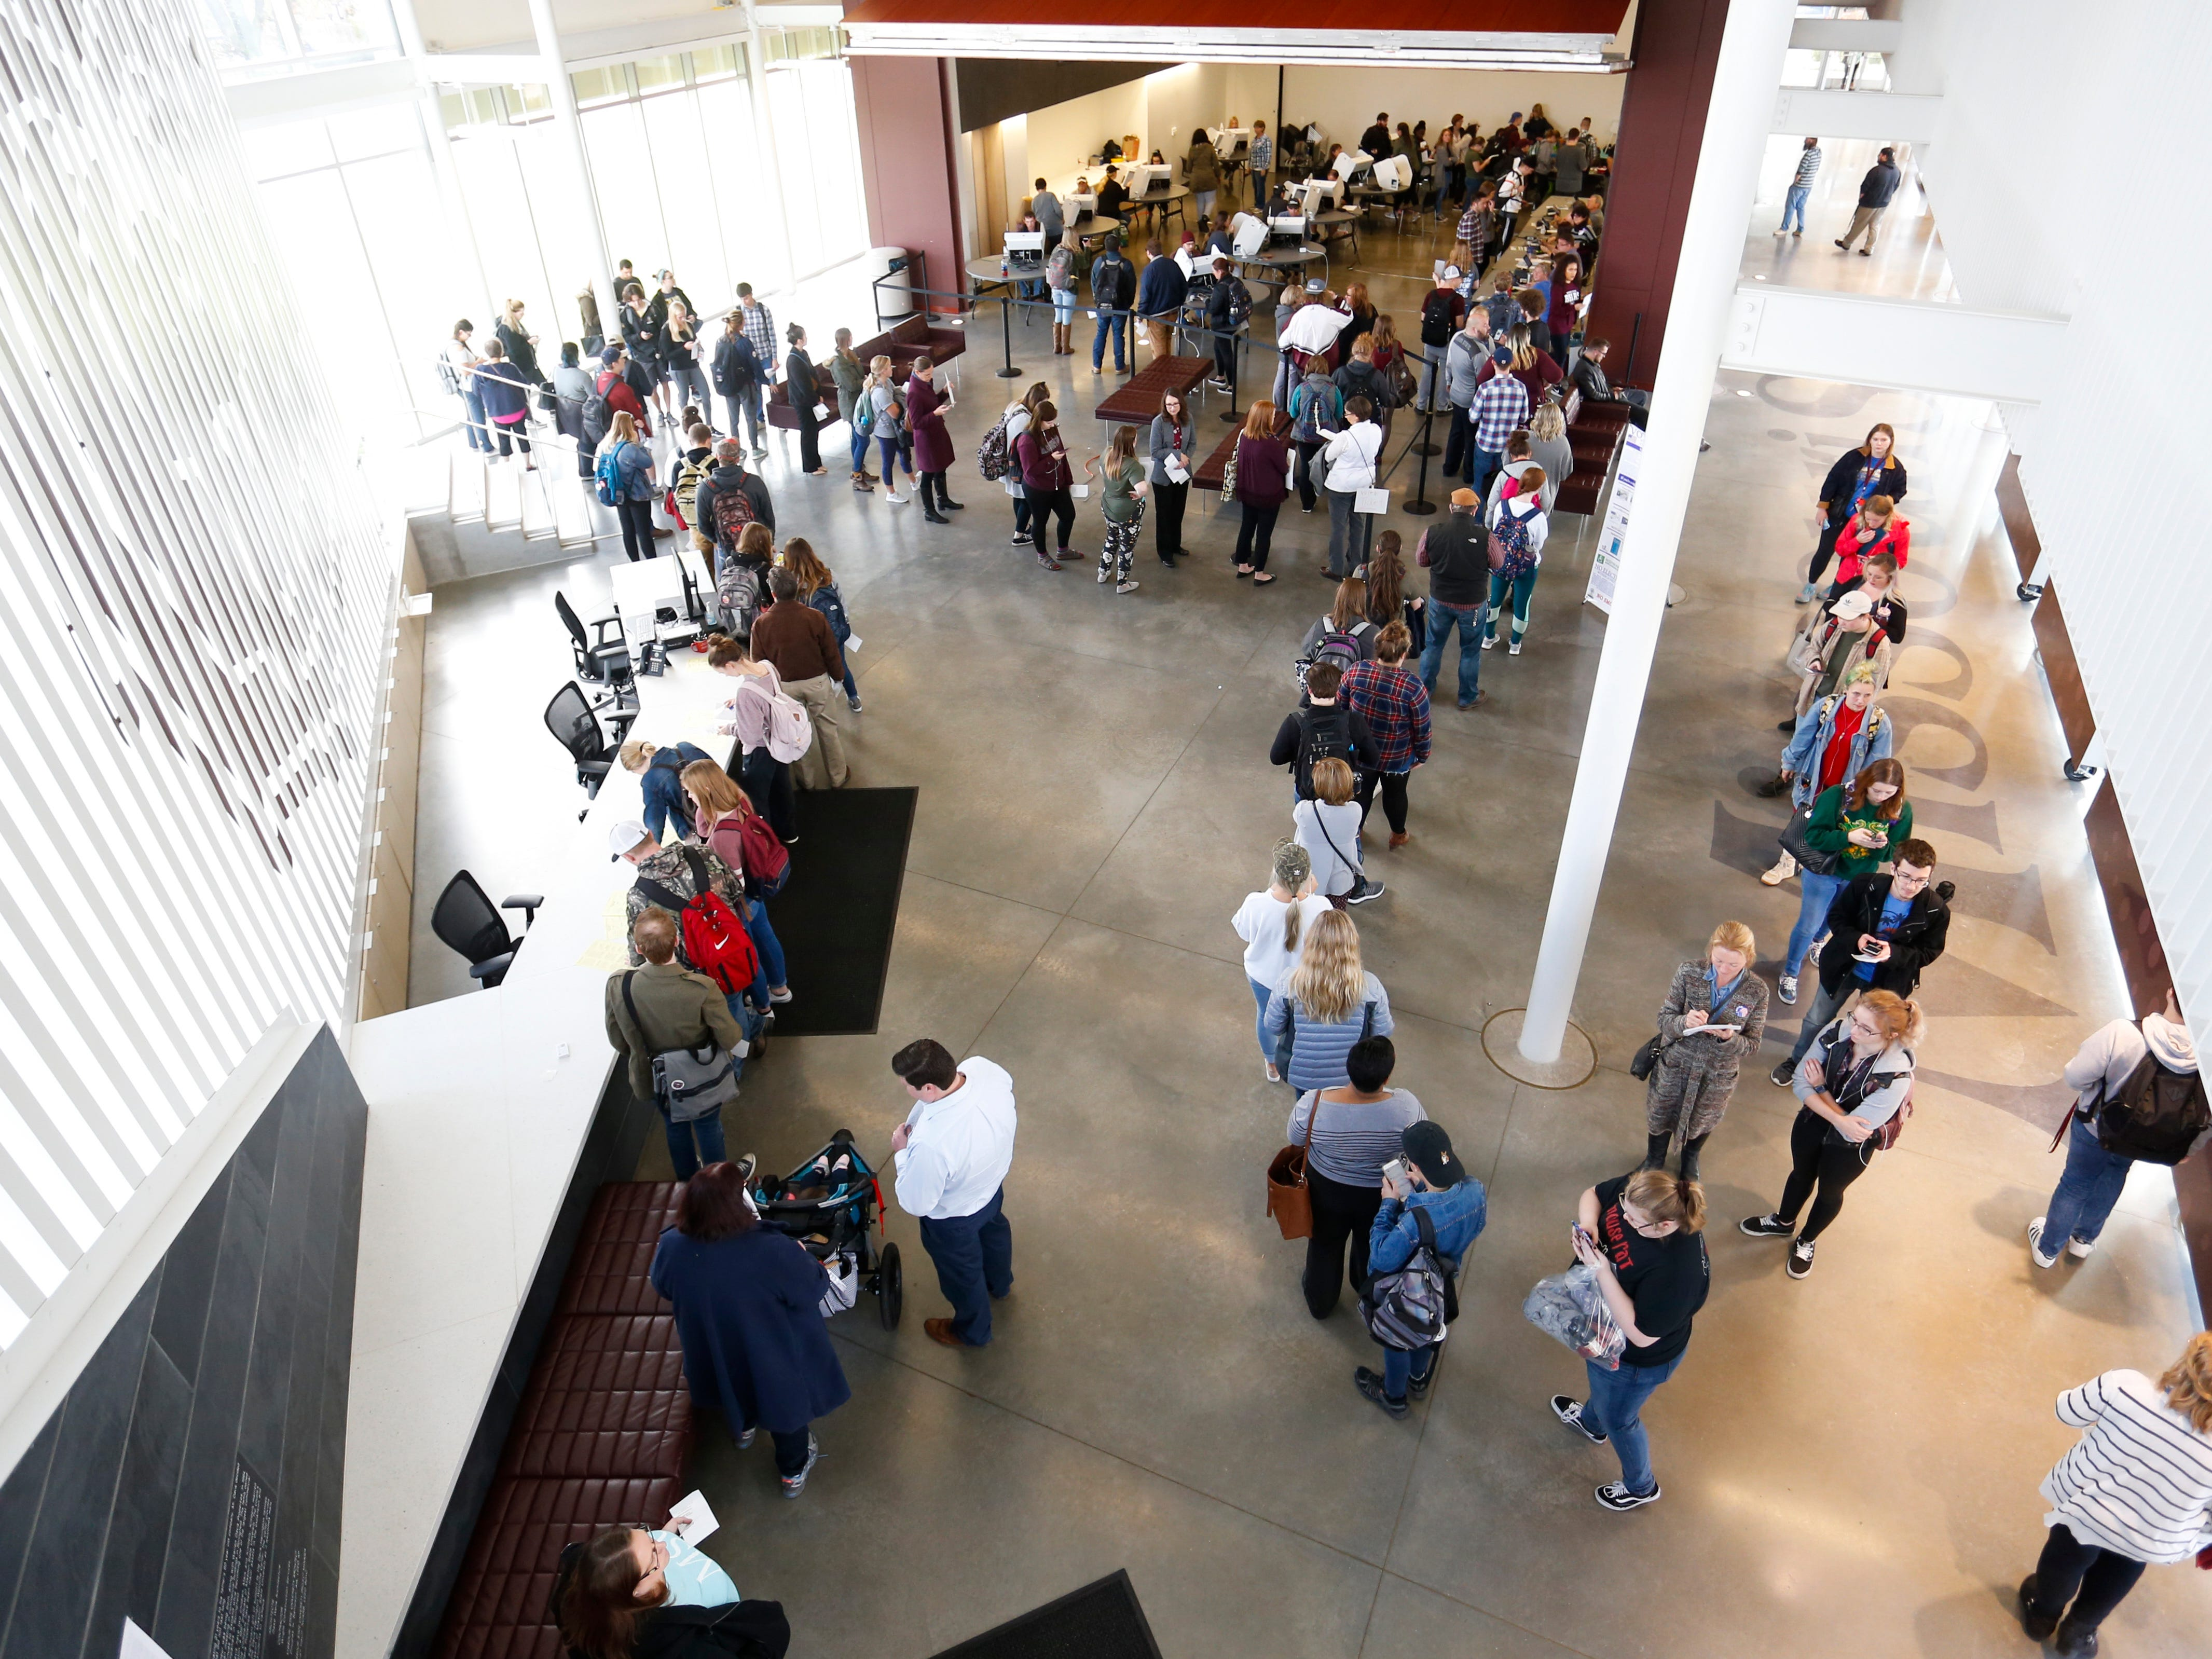 Voters line up at the central polling at the Missouri State University Davis-Harrington Welcome Center to cast their ballots on Tuesday, Nov. 6, 2018.